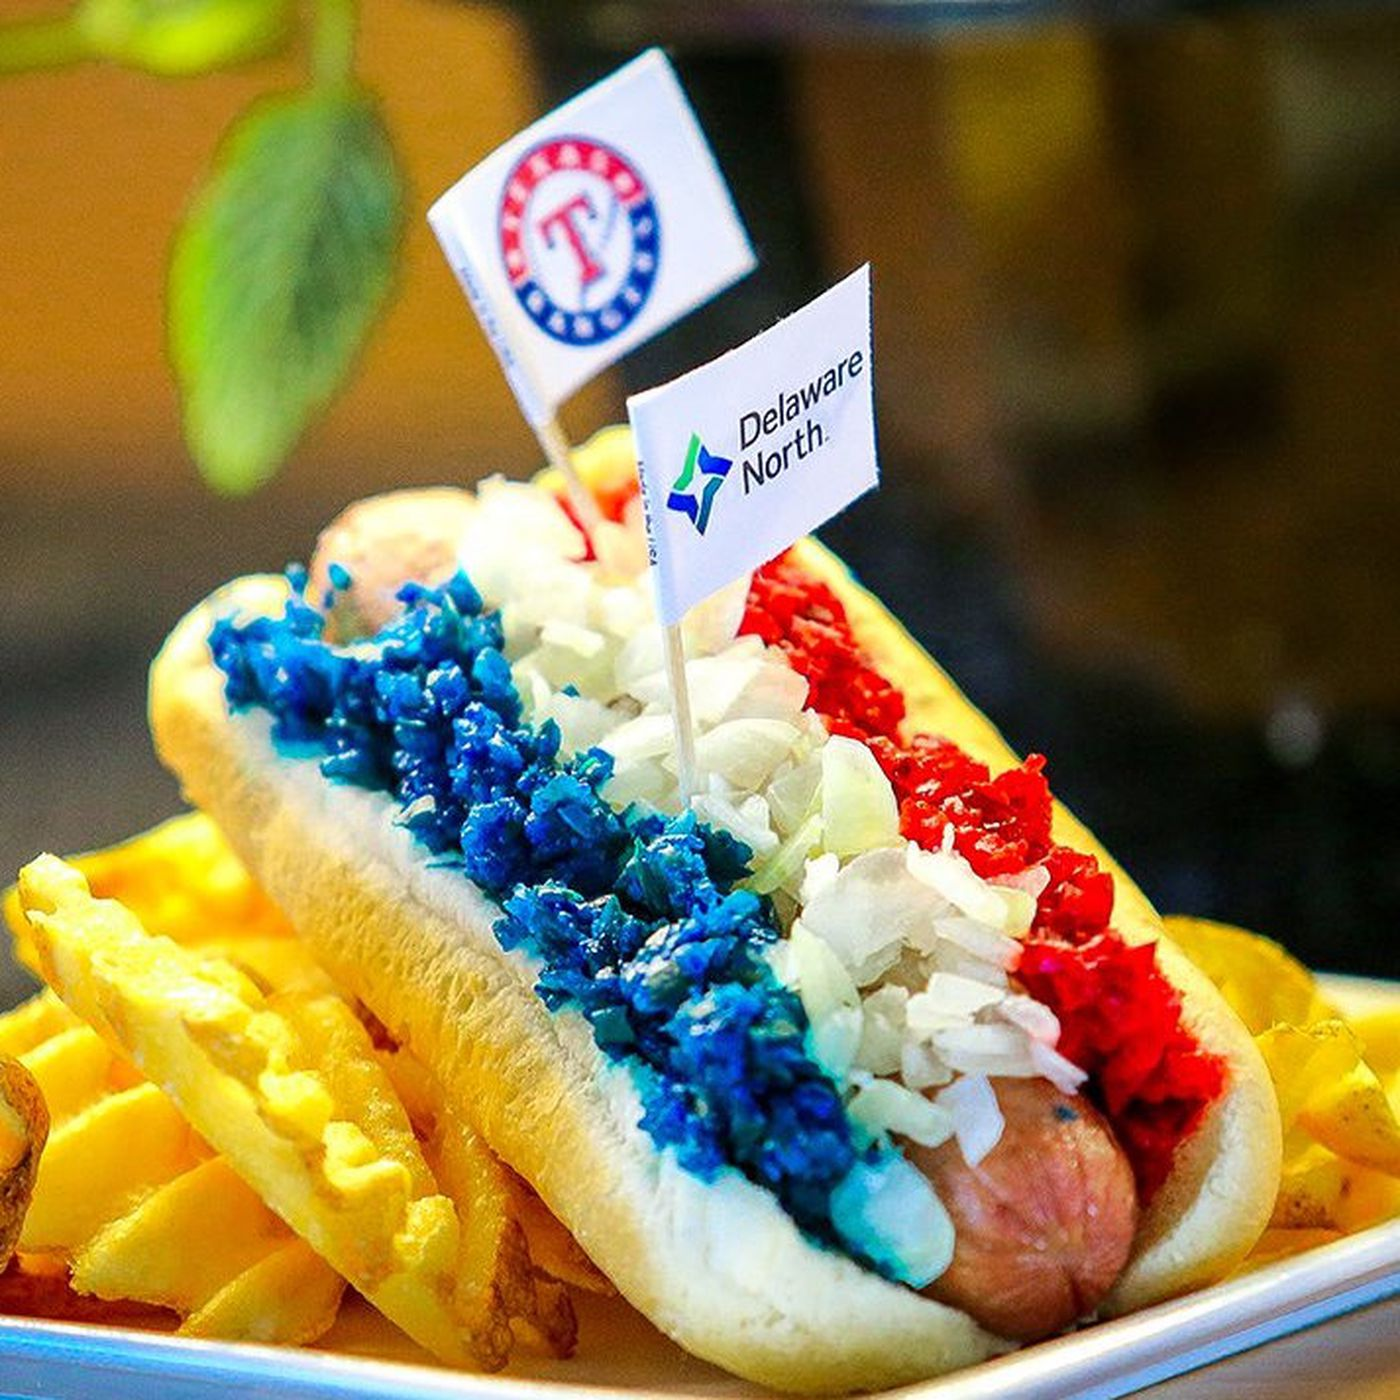 Texas Rangers Fans Who Seriously Miss Ballpark Food Can Now Have It  Delivered at Home - Eater Dallas